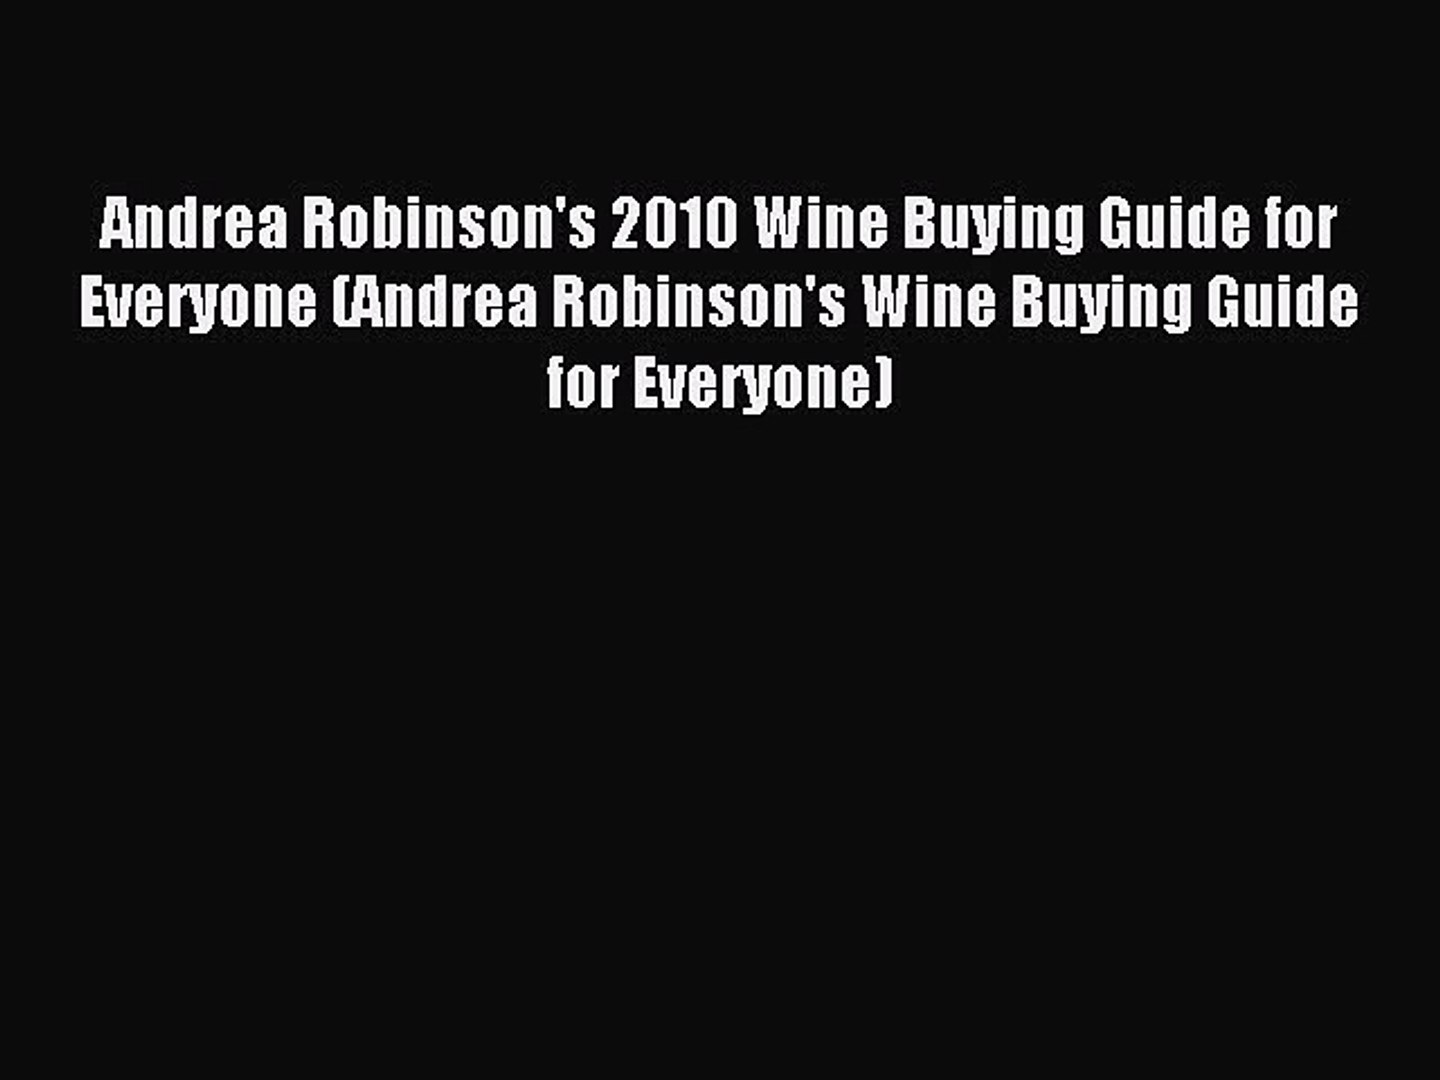 Read Andrea Robinson's 2010 Wine Buying Guide for Everyone (Andrea Robinson's Wine Buying